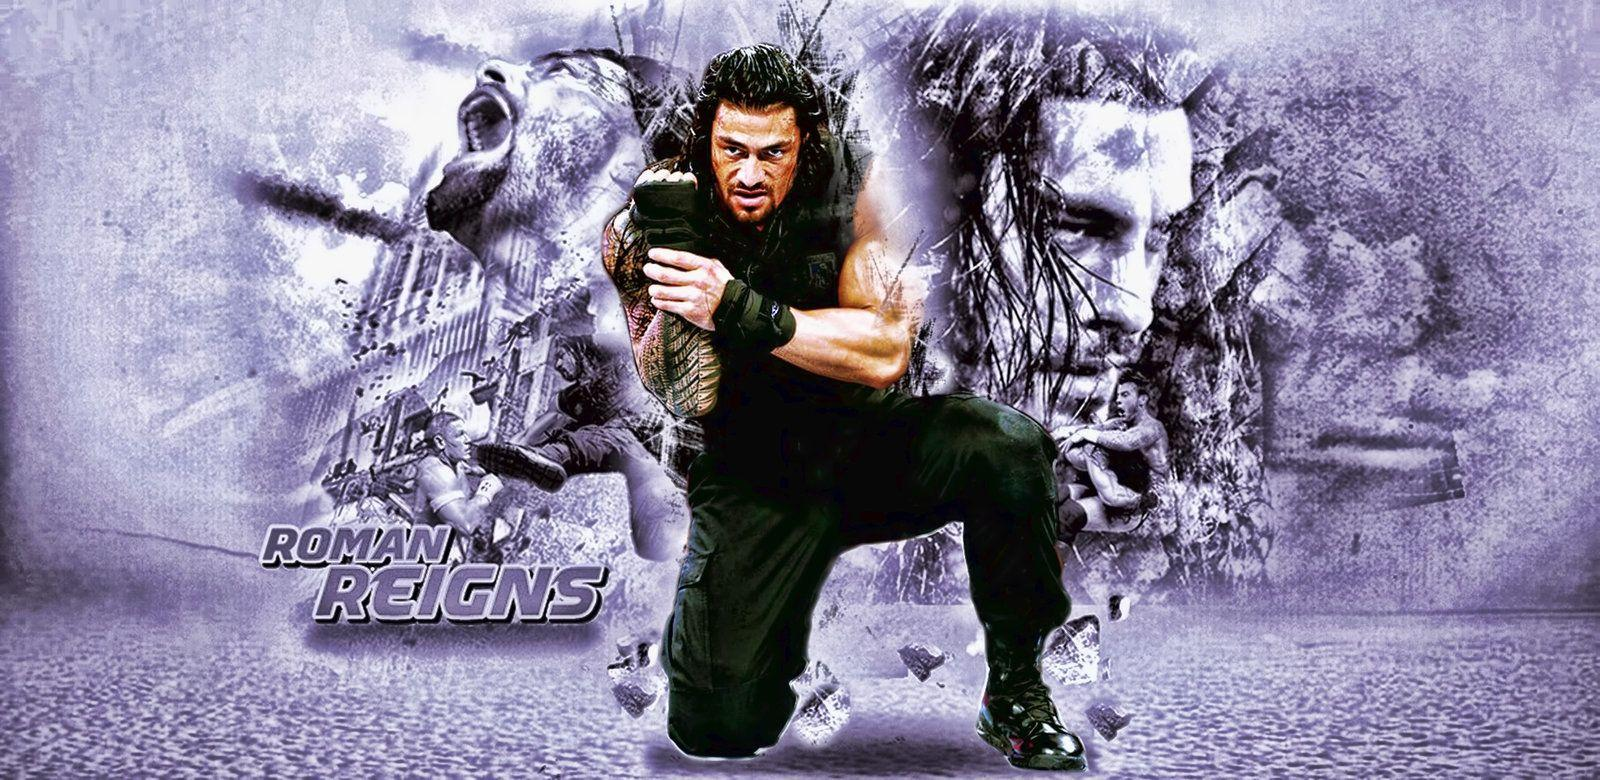 Download WWE Roman Reigns 2016 Wallpapers for Desktop – HD